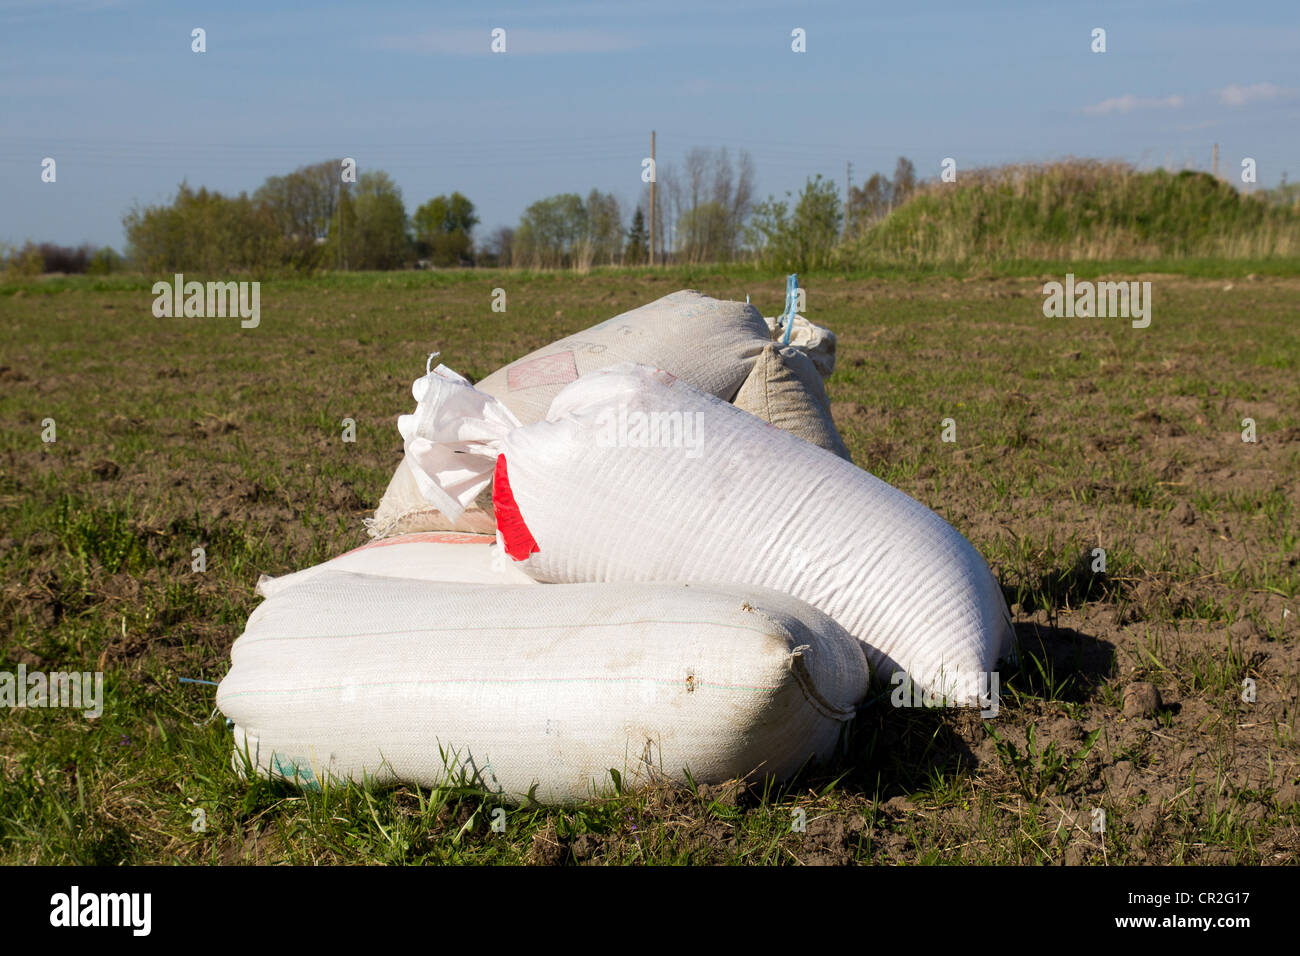 cereal seeds in sacks waiting at the edge of the field - Stock Image